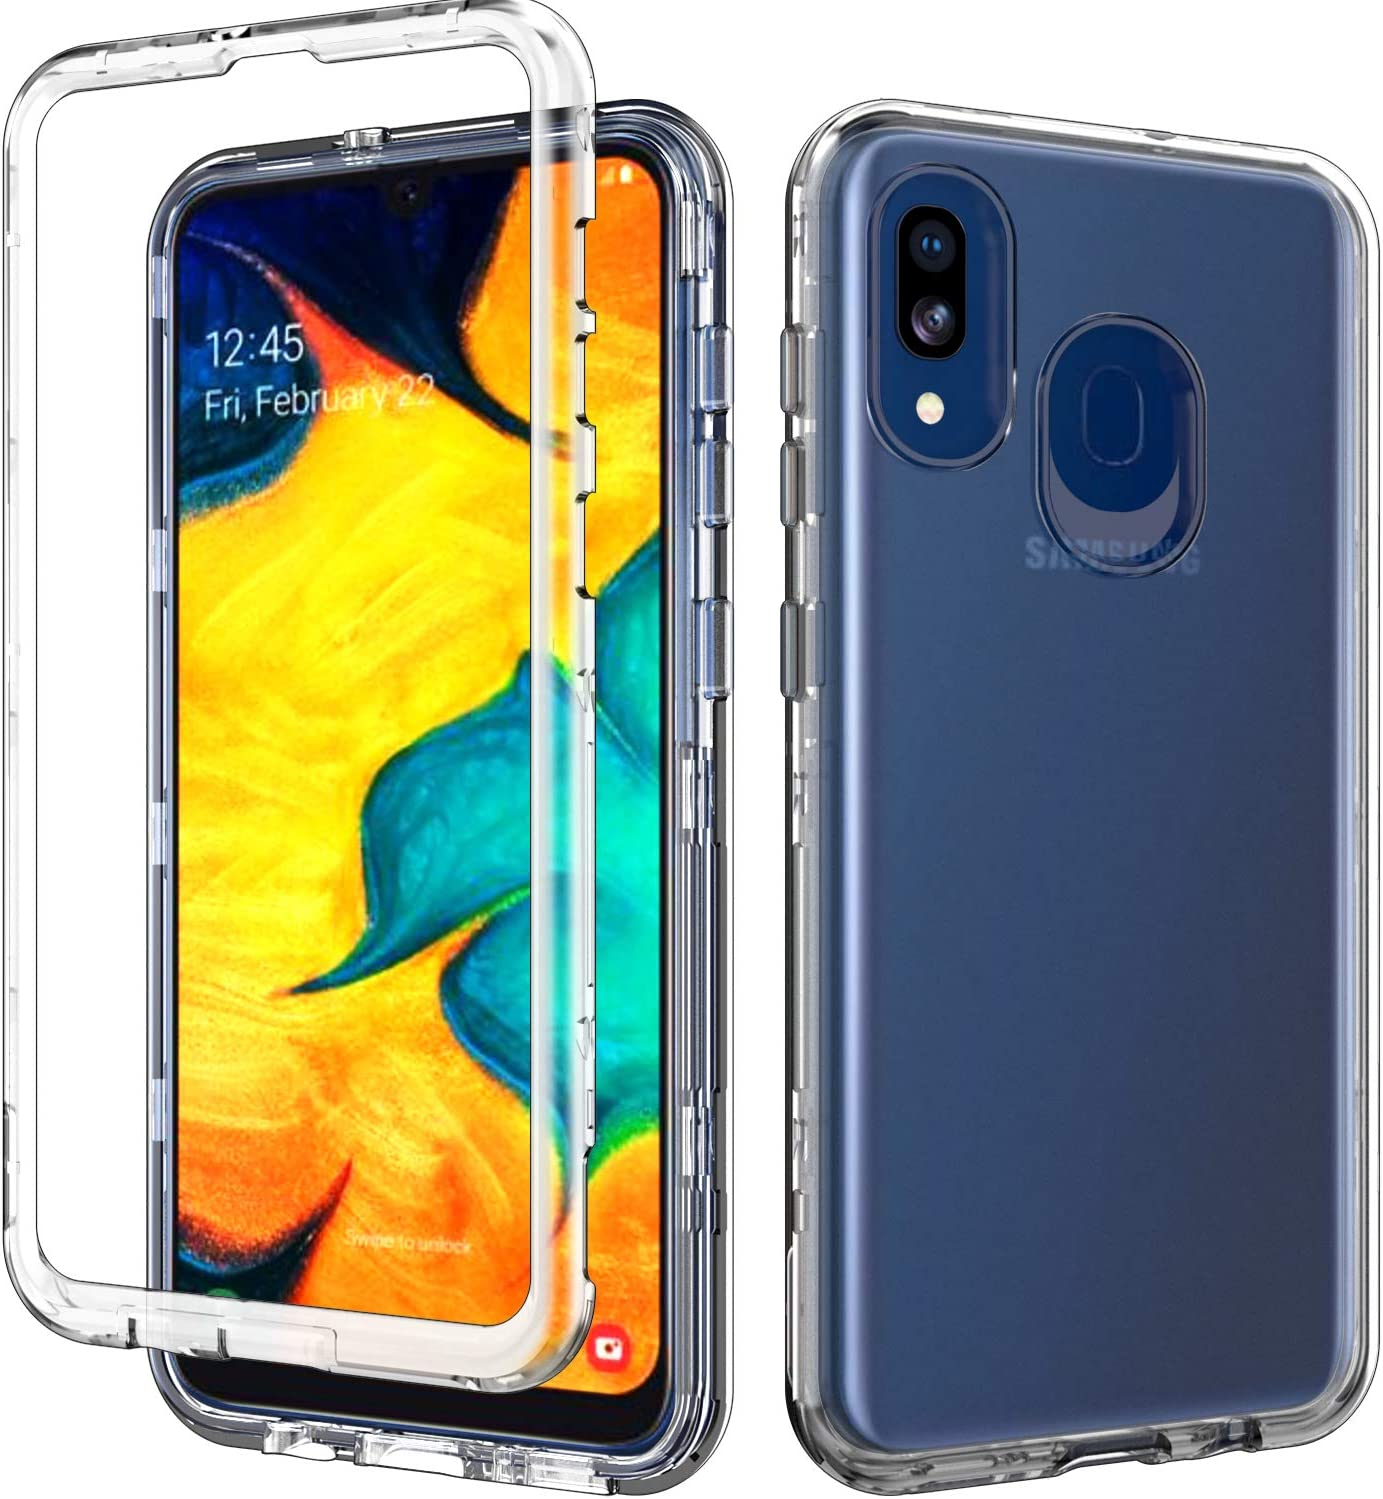 ACKETBOX Samsung A20 Case Hybrid Impact Defender Three Layer Drop Protection Armor Hard PC Back Case and Bumper+Shockproof TPU Full Body Protective Cover for Samsung Galaxy A20/A30(Clear)